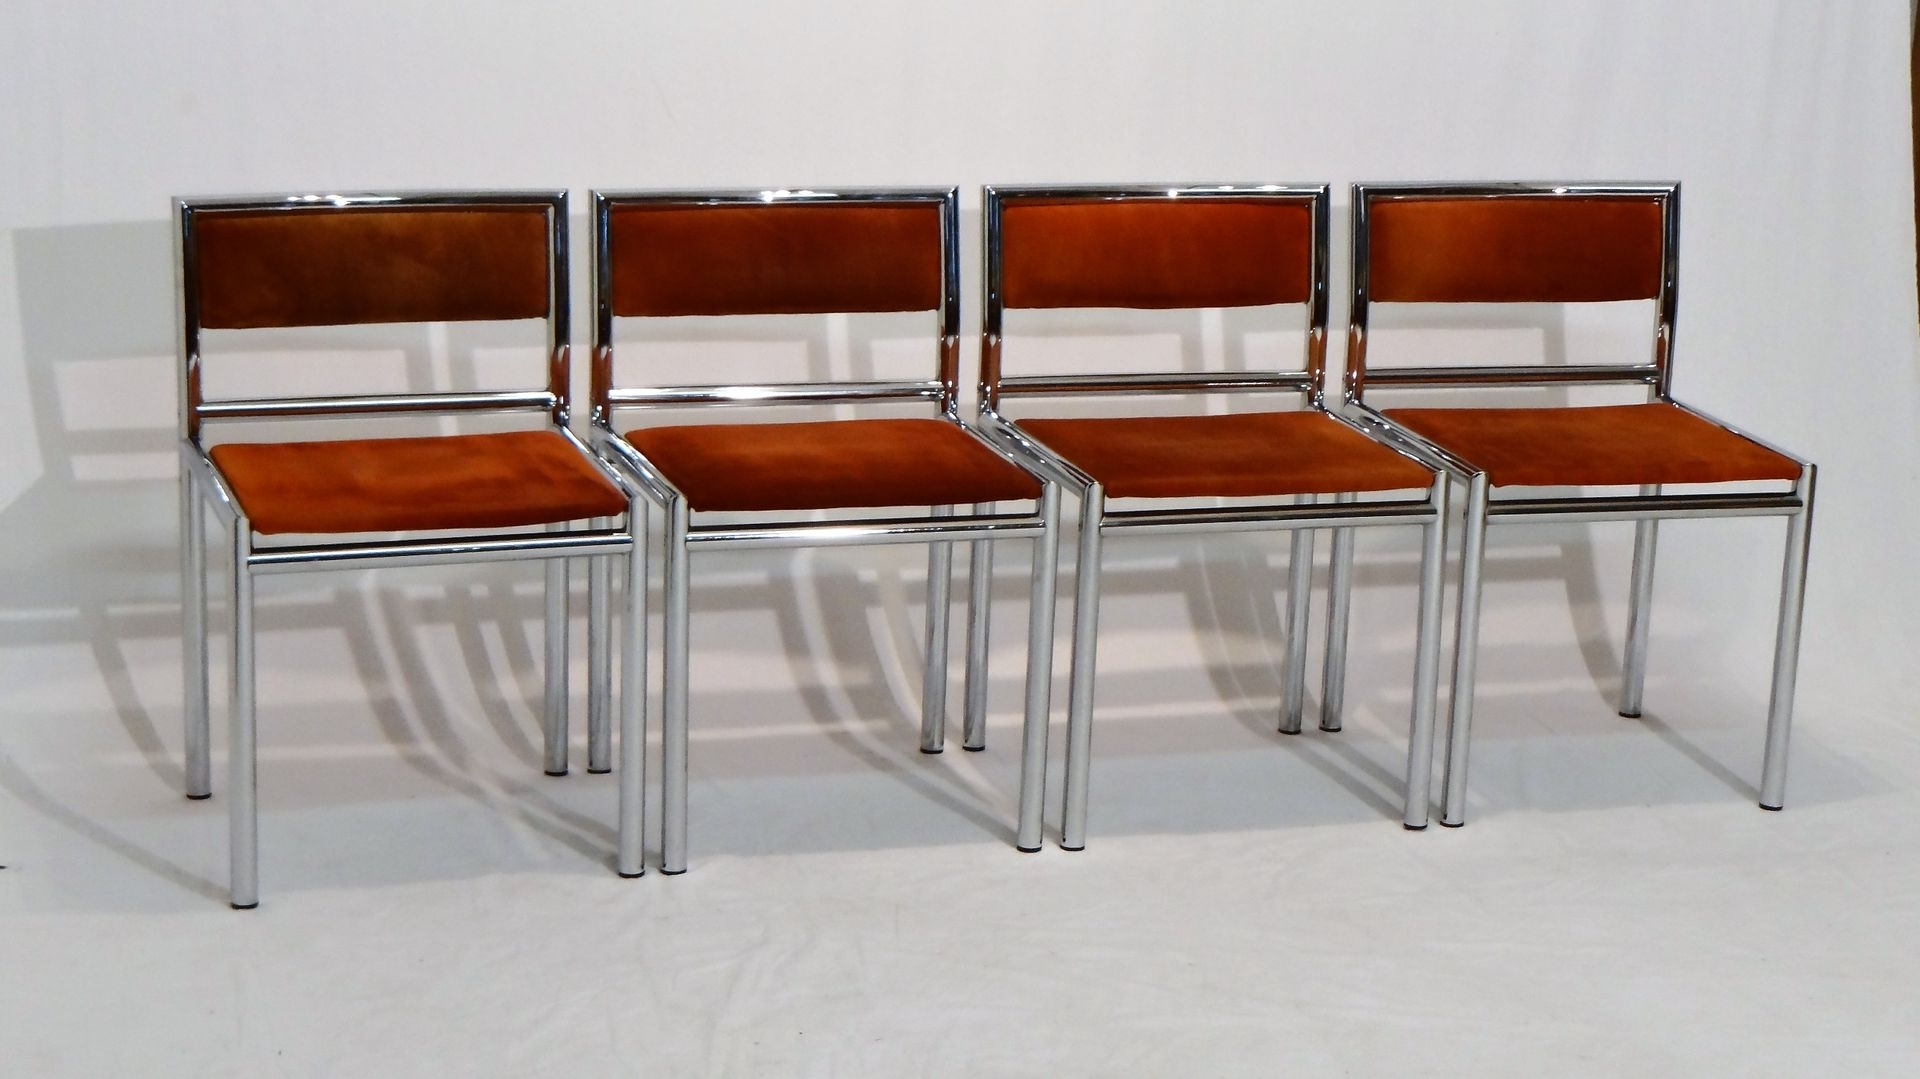 Fashionable Chrome Dining Chairs With Mid Century Dining Chairs In Tubular Chrome And Leather, Set Of  (View 13 of 25)